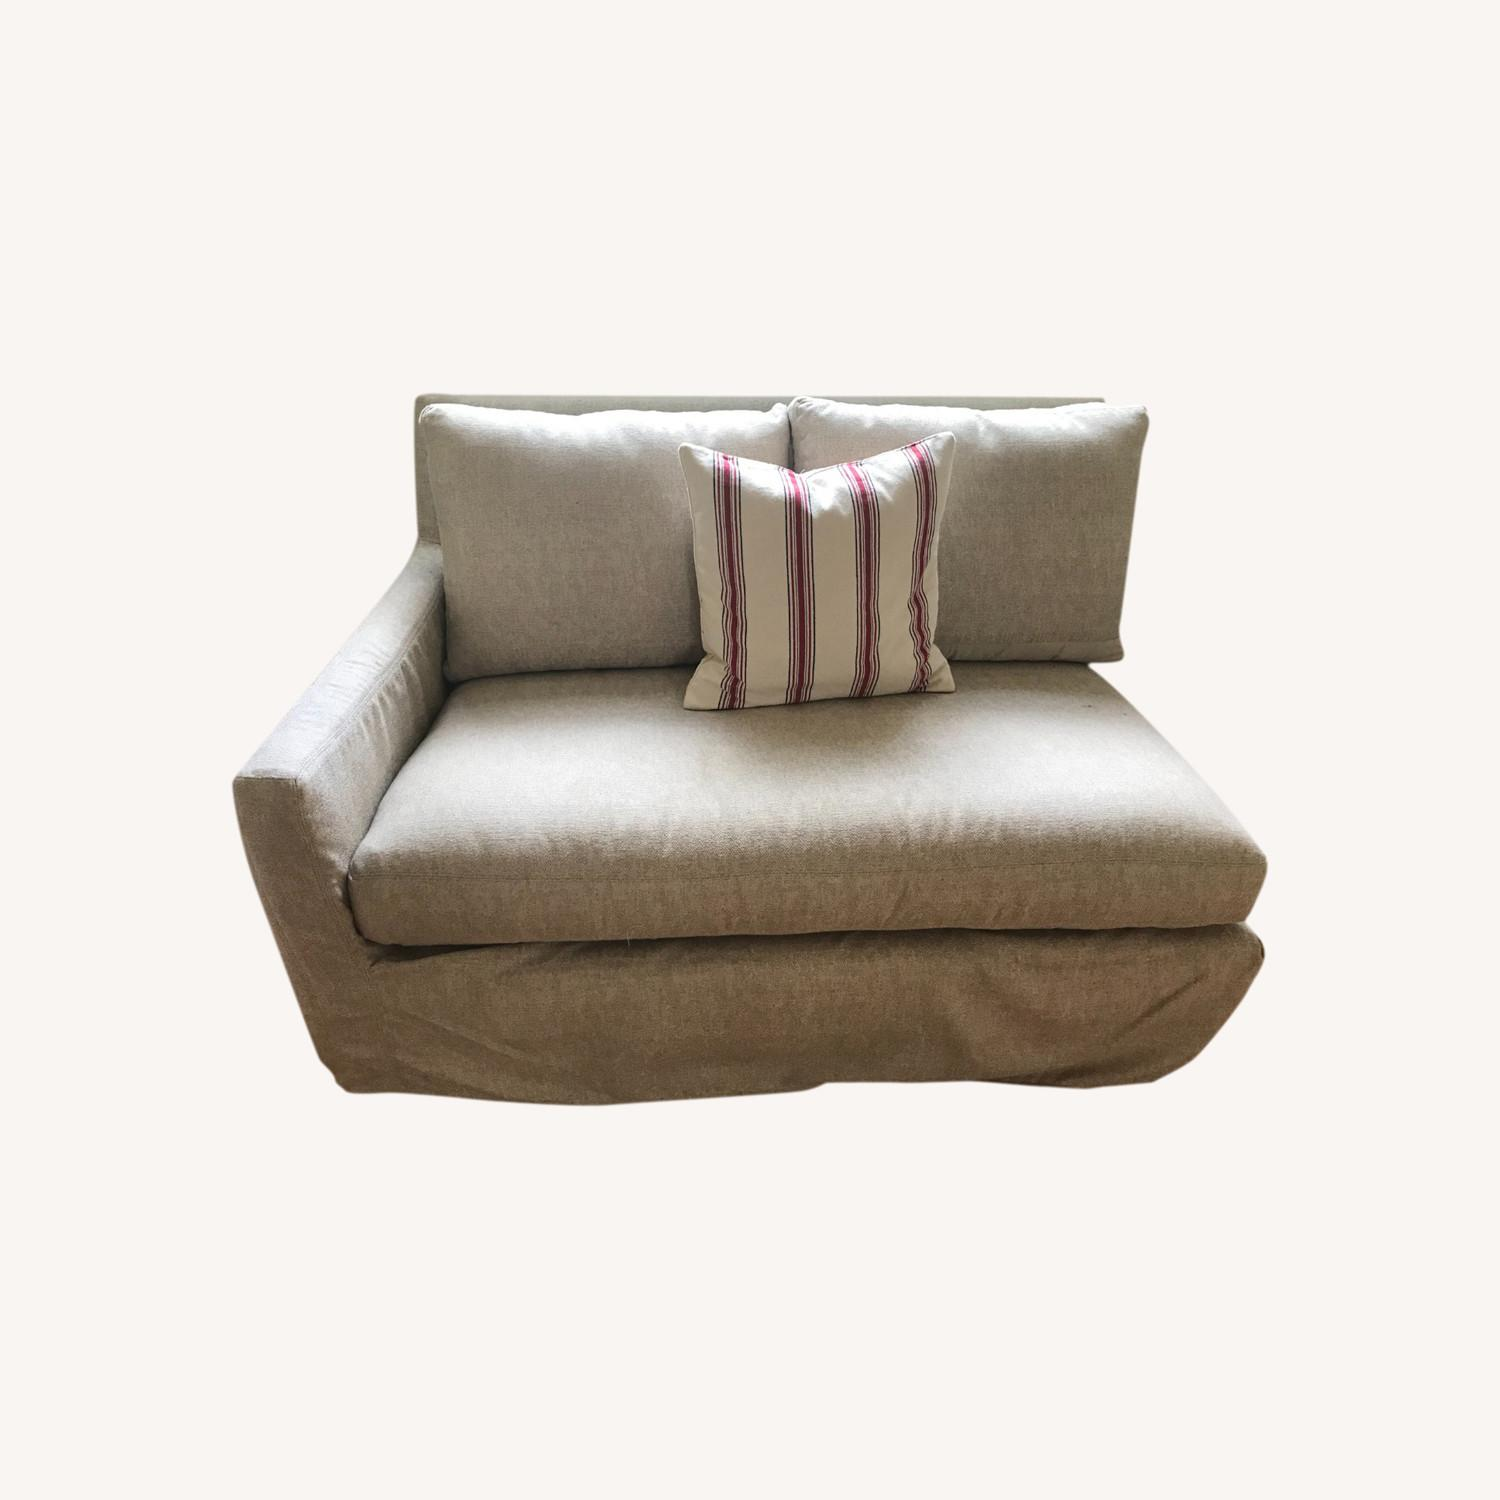 Chaise Lounge - image-0